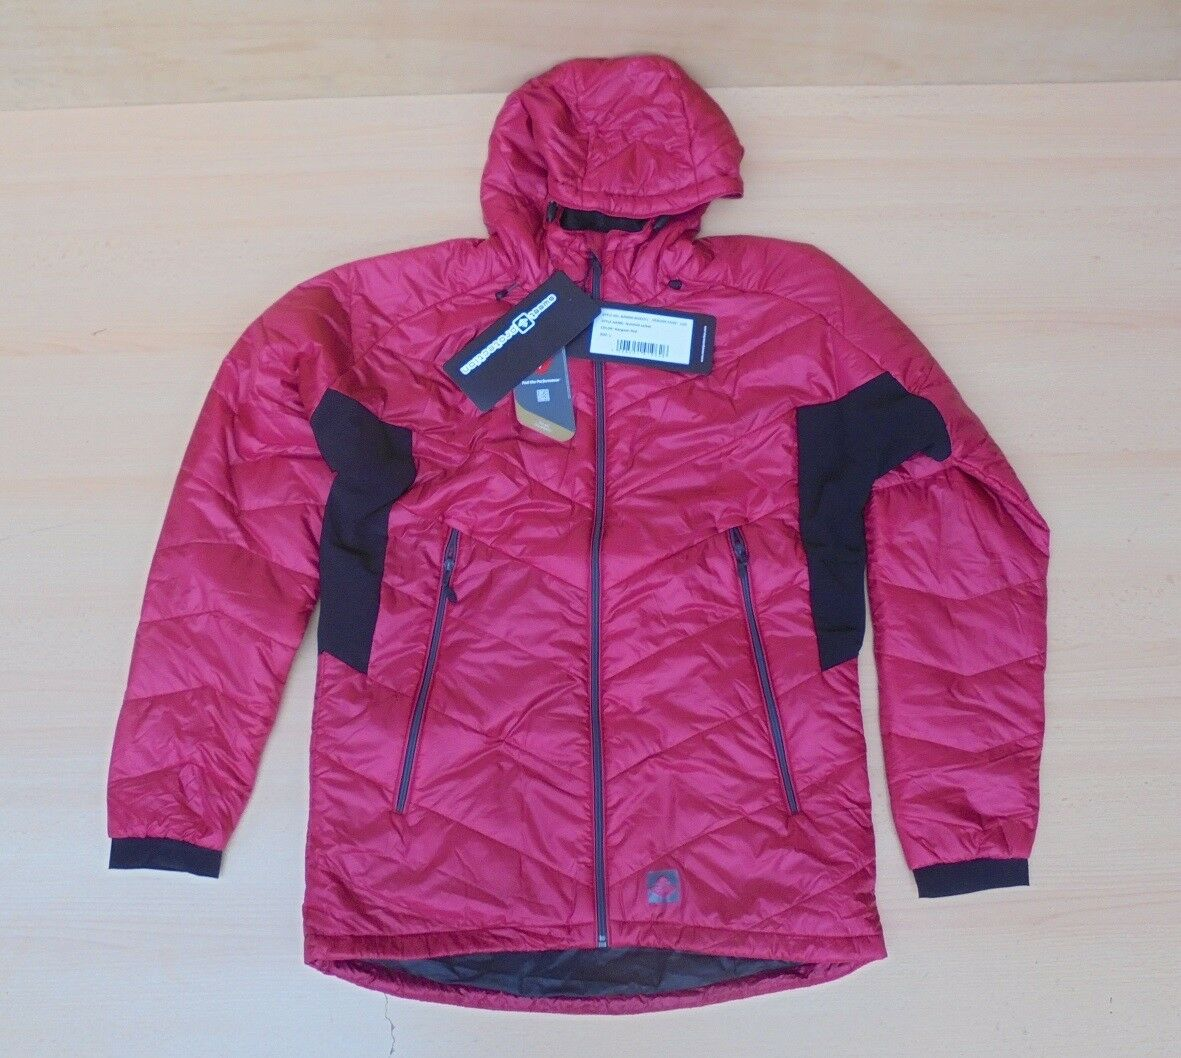 Sweet Protection Herren Nutshell Jacket Jacke Gr. L Rangoon rot Rot